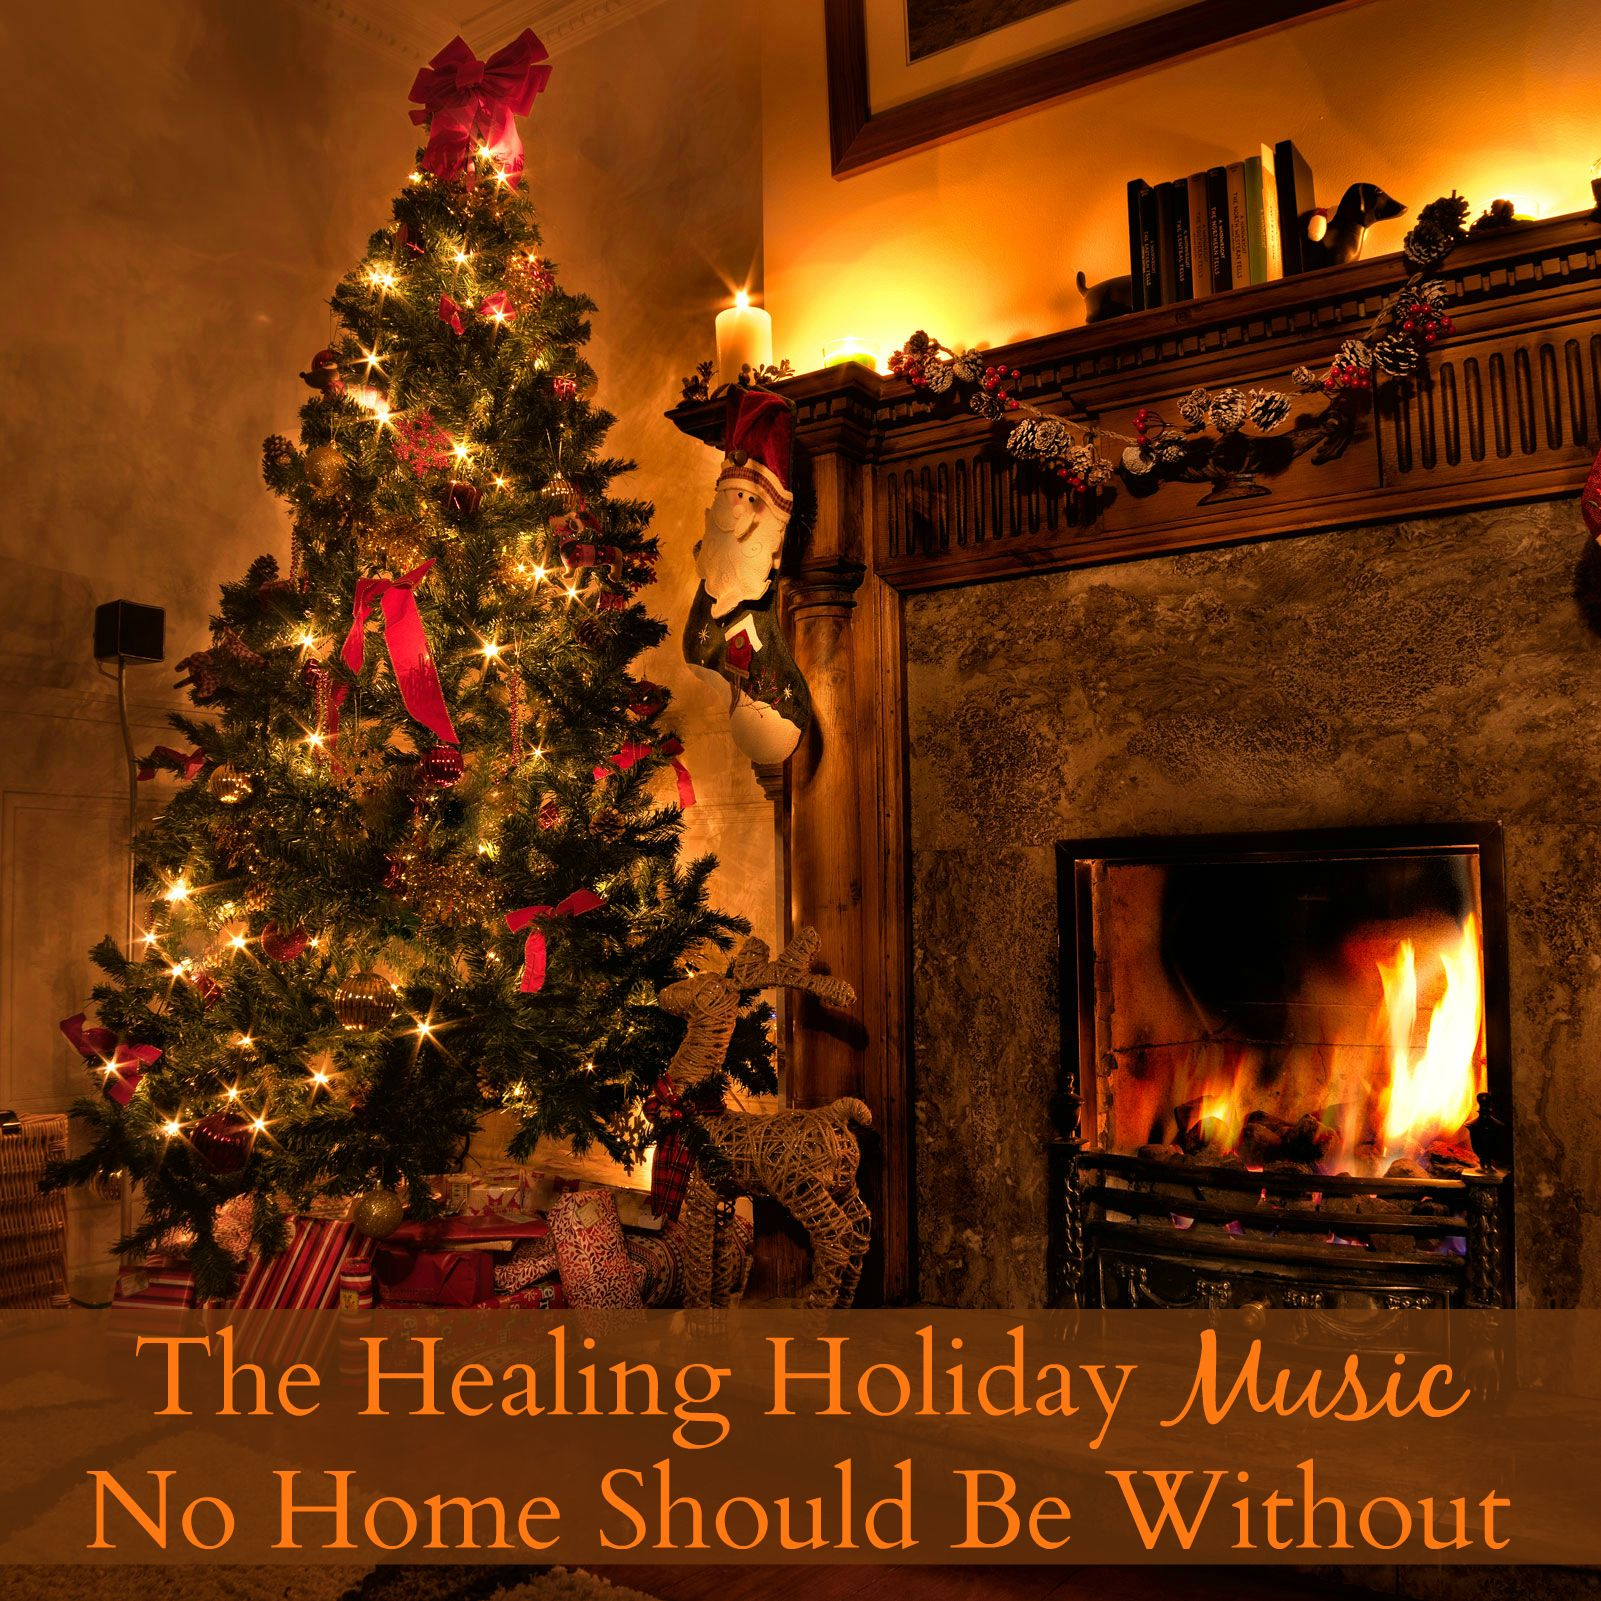 Enjoy The Season With Your Family While Listening To These